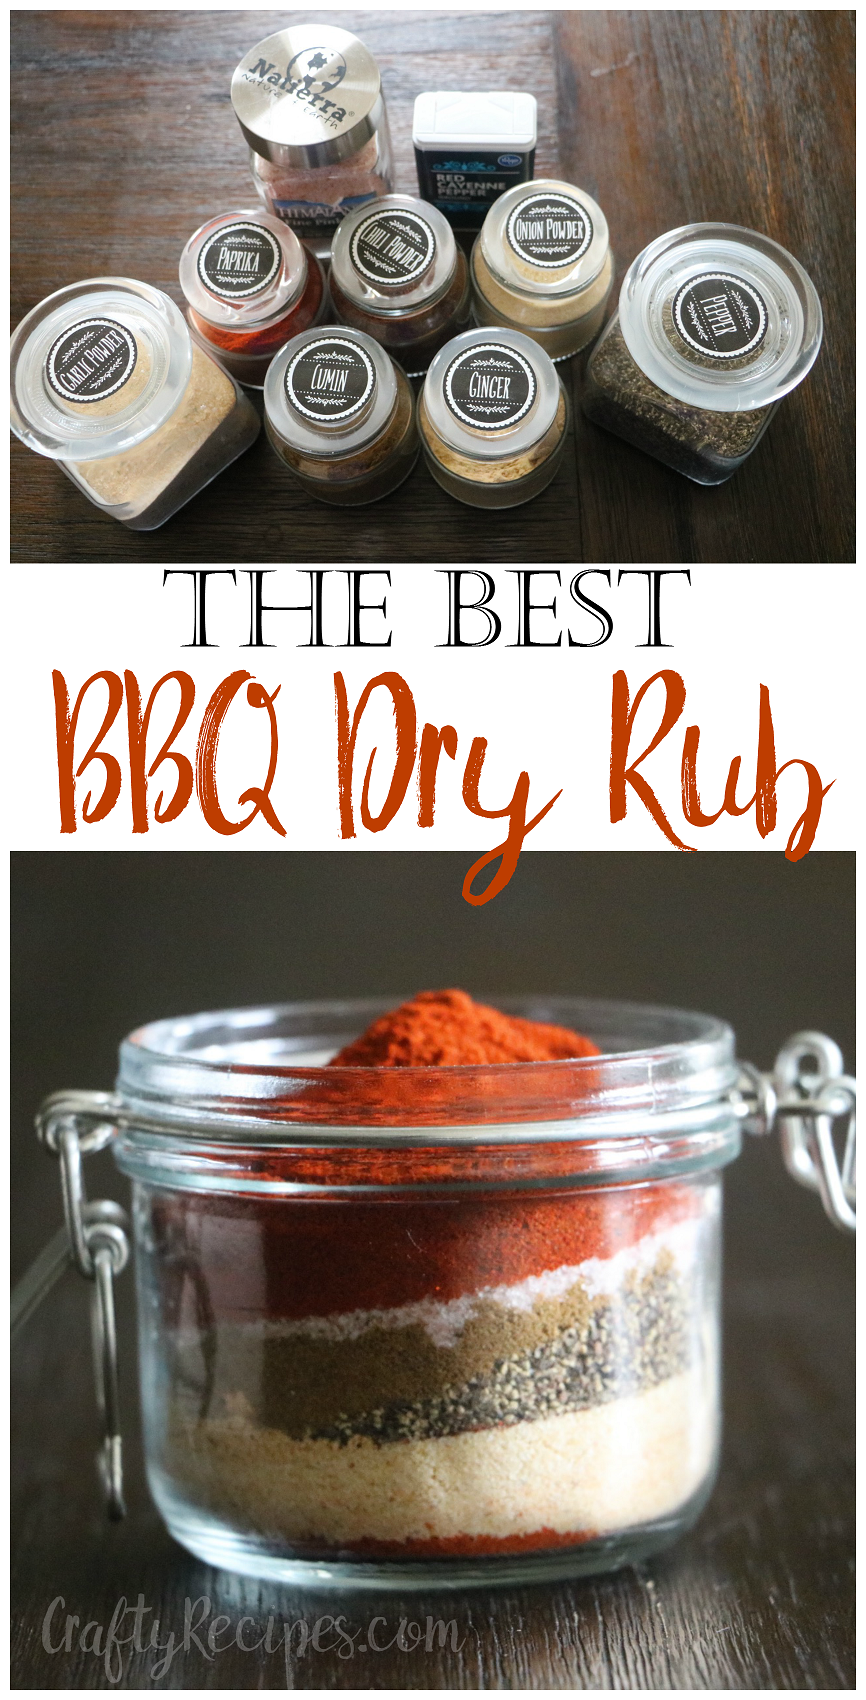 This Really Is The Best Bbq Dry Rub Recipe To Put On Ribs Chicken Pork Or Beef Great For Grilling Dry Rub Recipes Rub Recipes Bbq Dry Rub